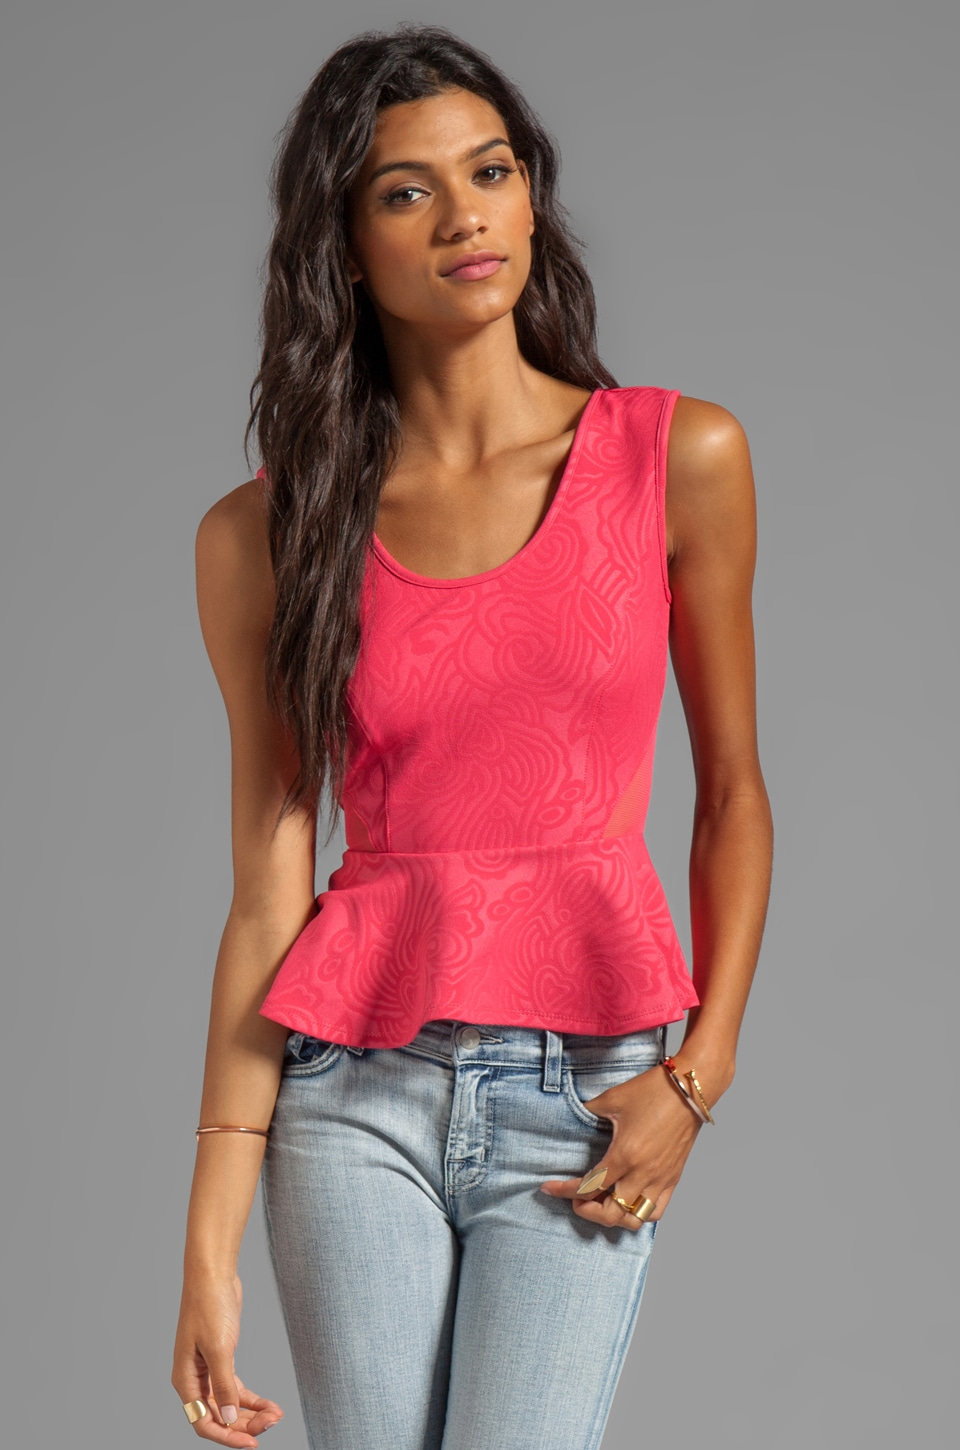 VOOM by Joy Han Nadia Sleeveless Peplum Top in Coral